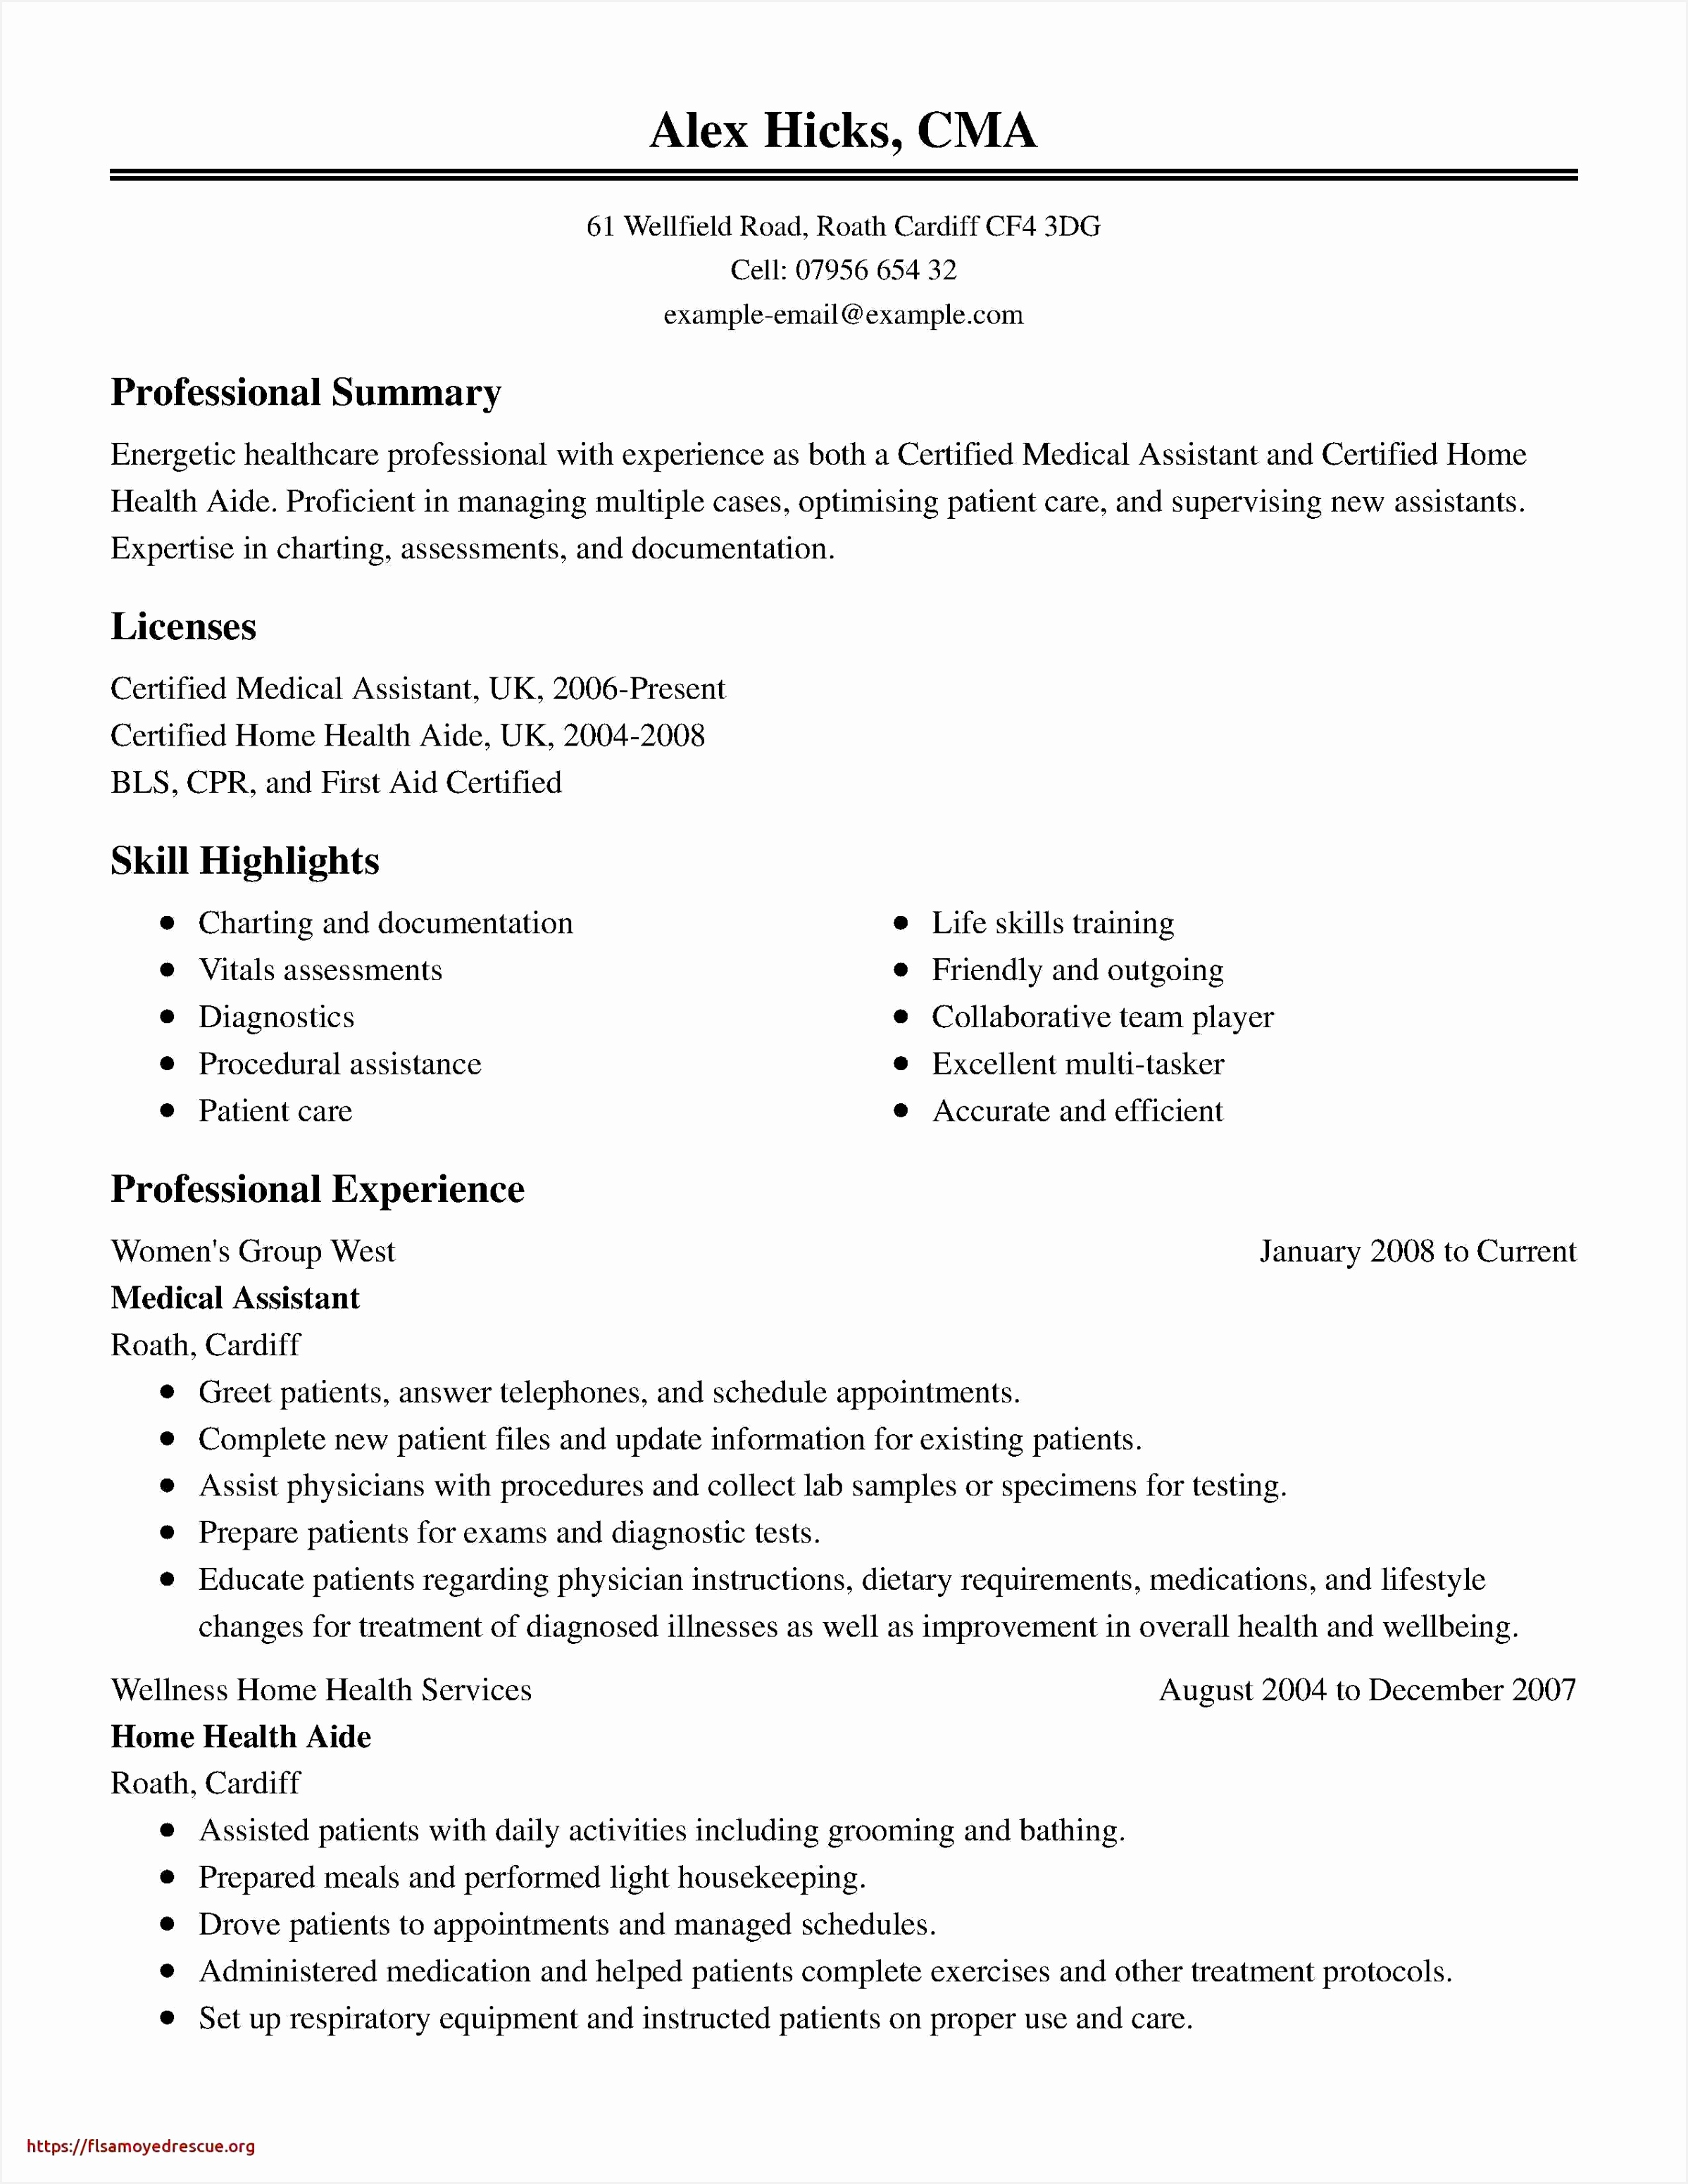 Examples A Resume Lovely Example Job Resume Fresh Luxury Examples @ Examples Resumes For Jobs fvlhh